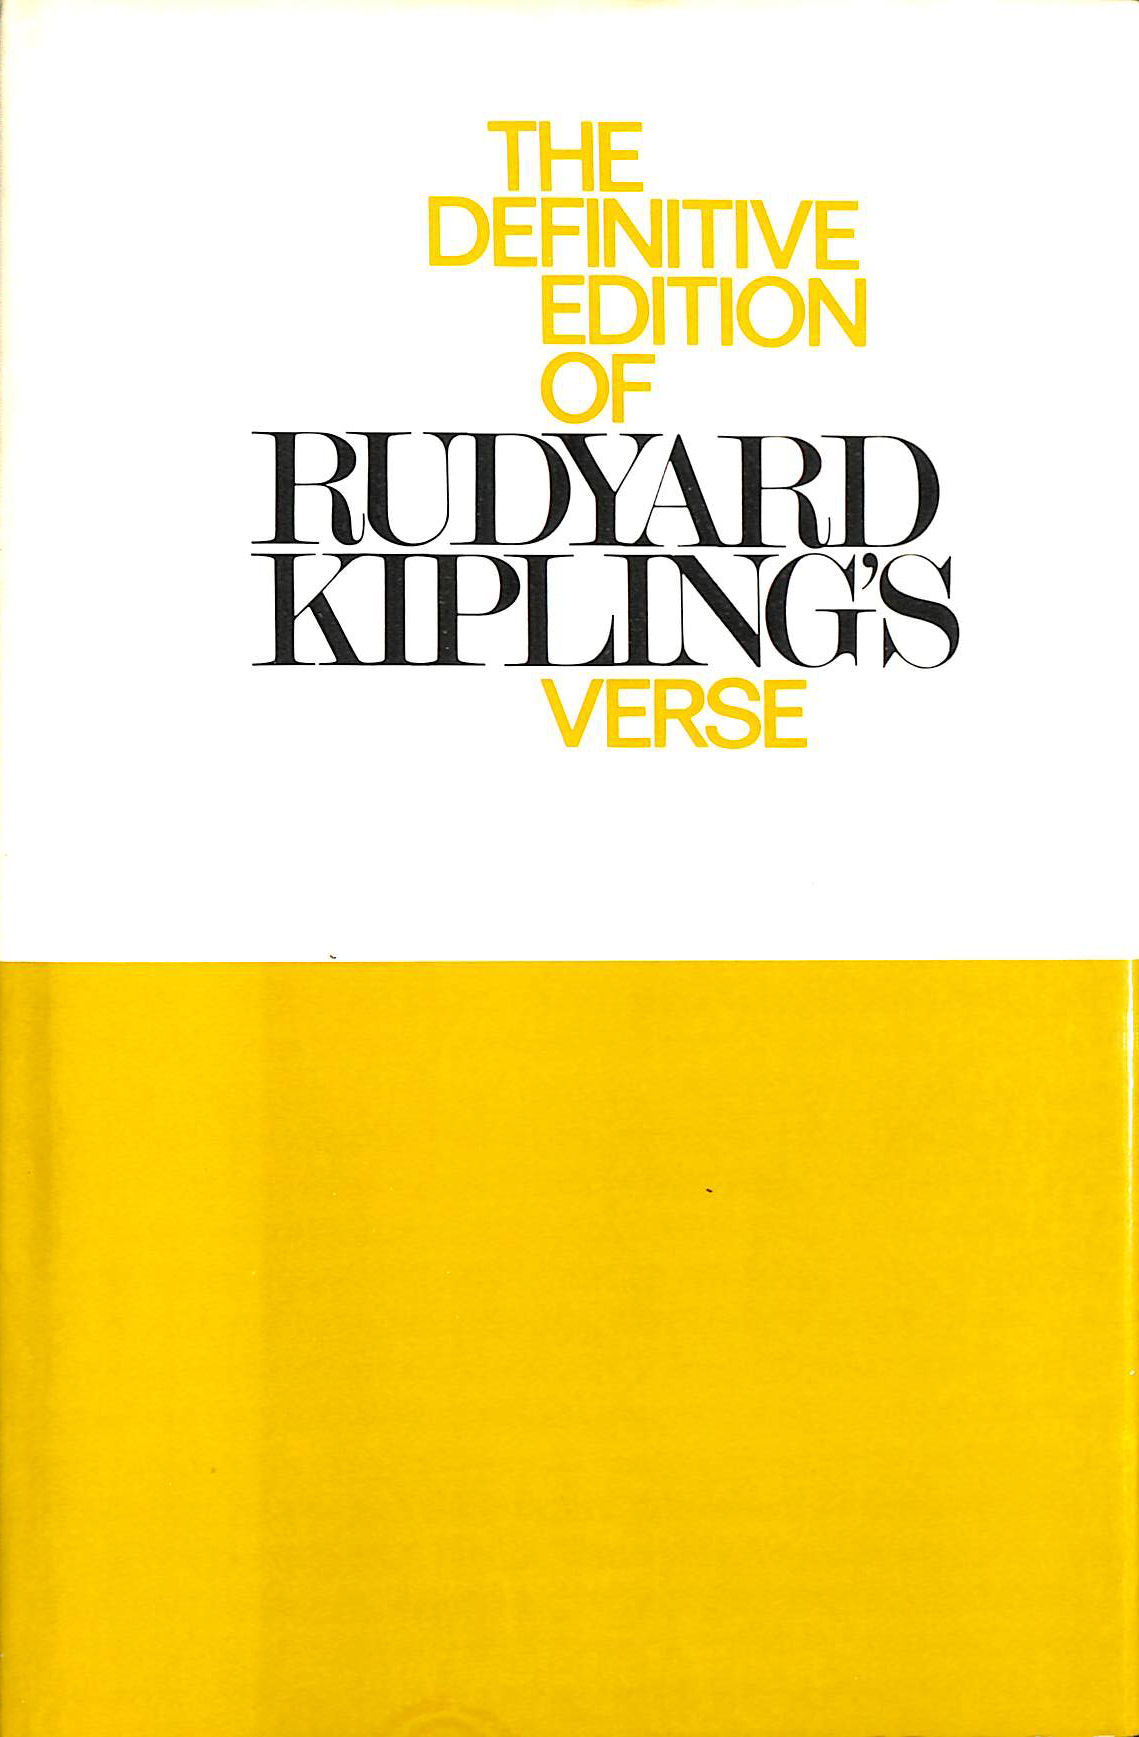 Image for Definitive Edition of Rudyard Kipling's Verse